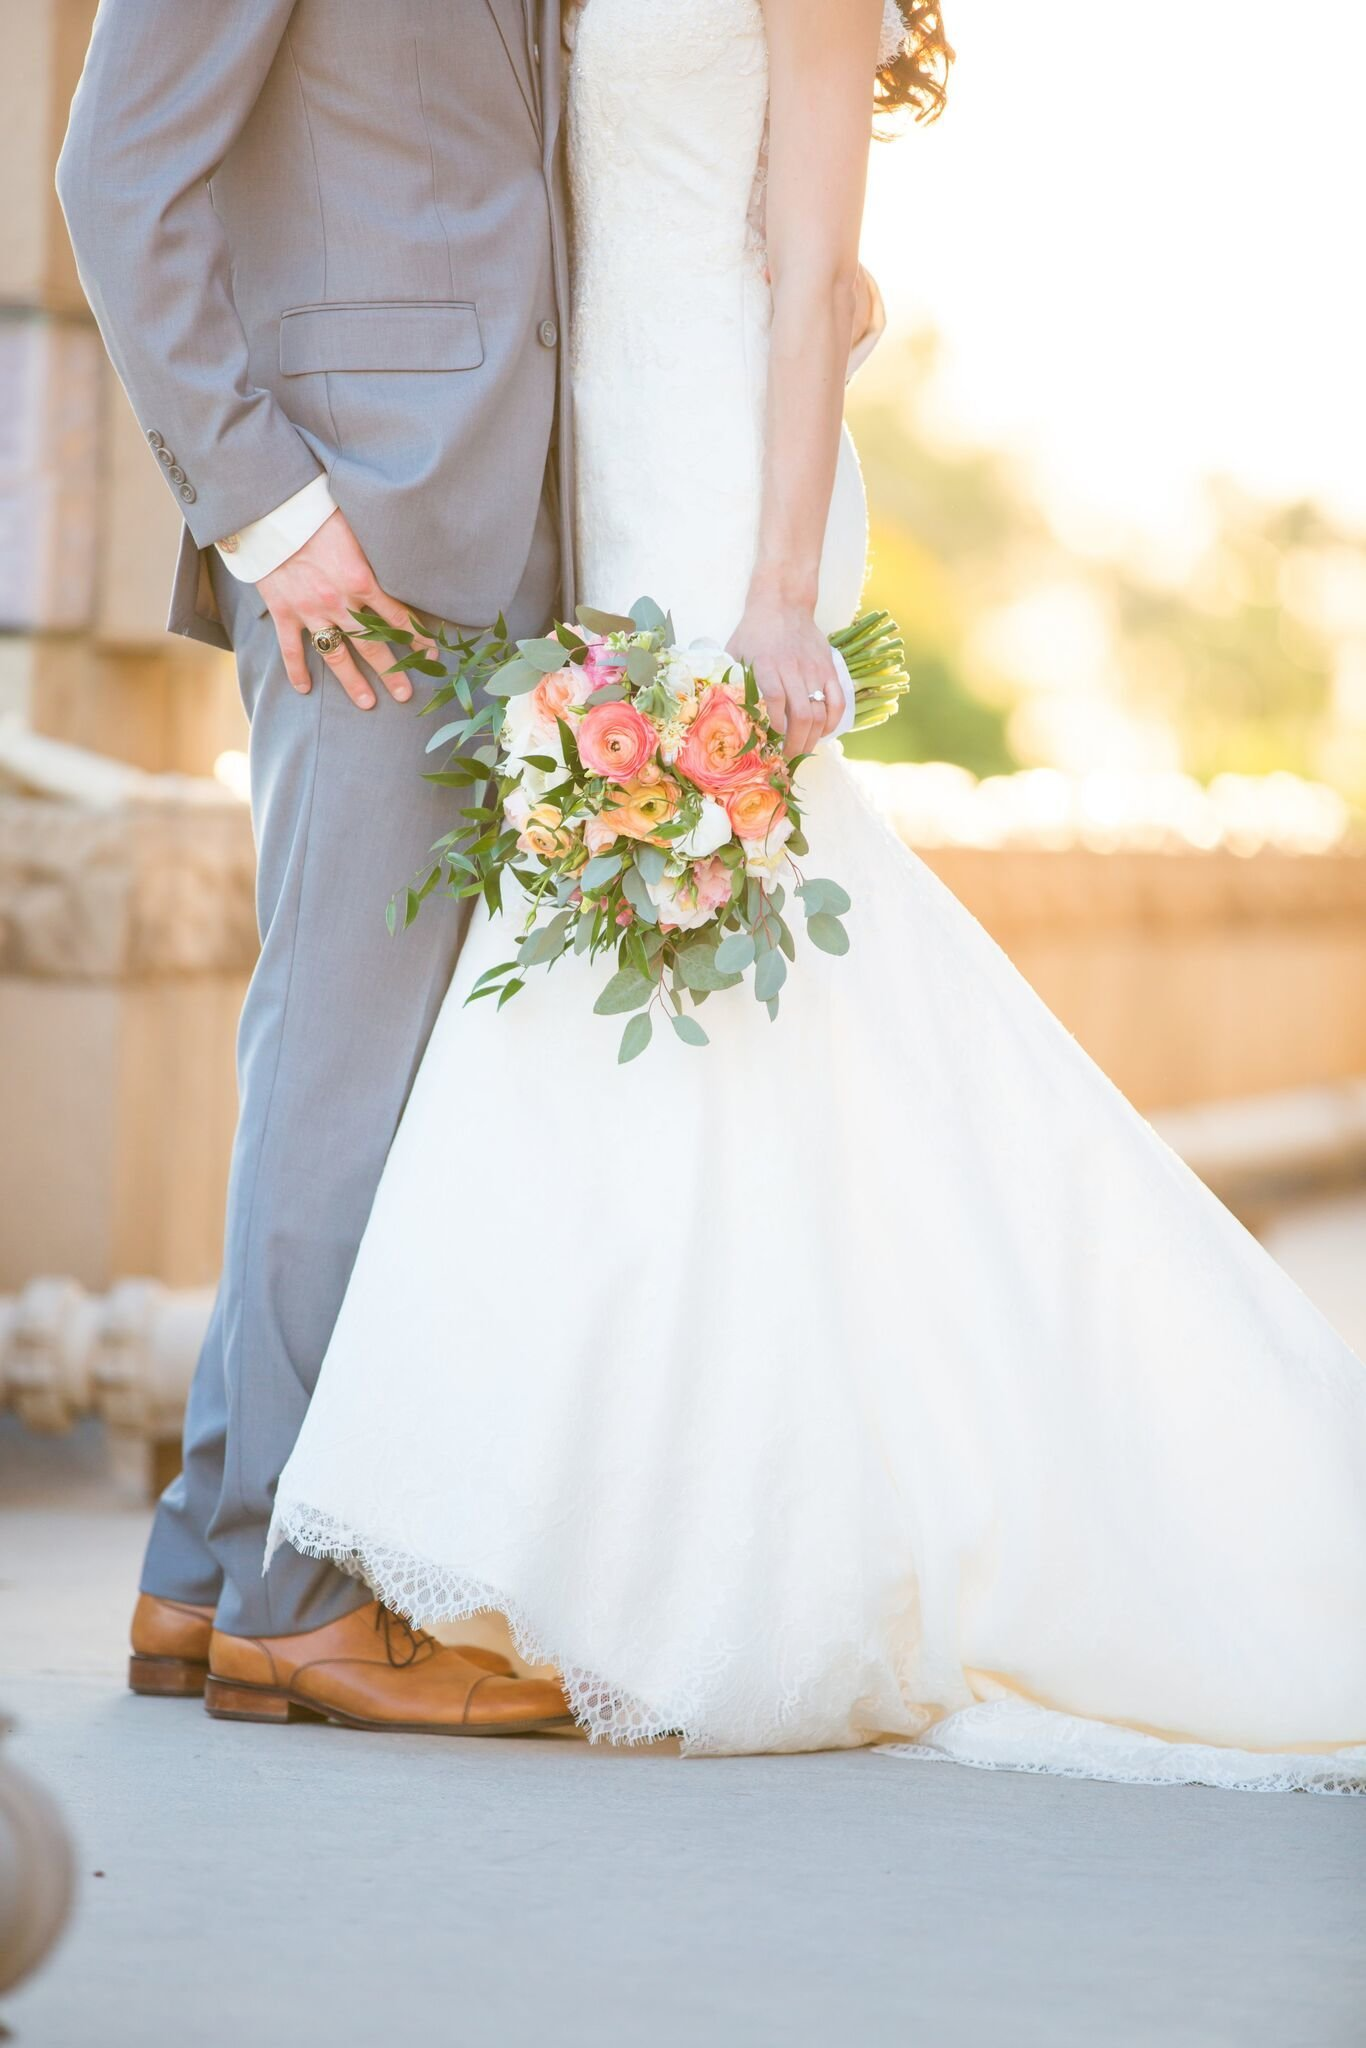 Your-Event-Florist-Arizona-Wedding-Flowers96